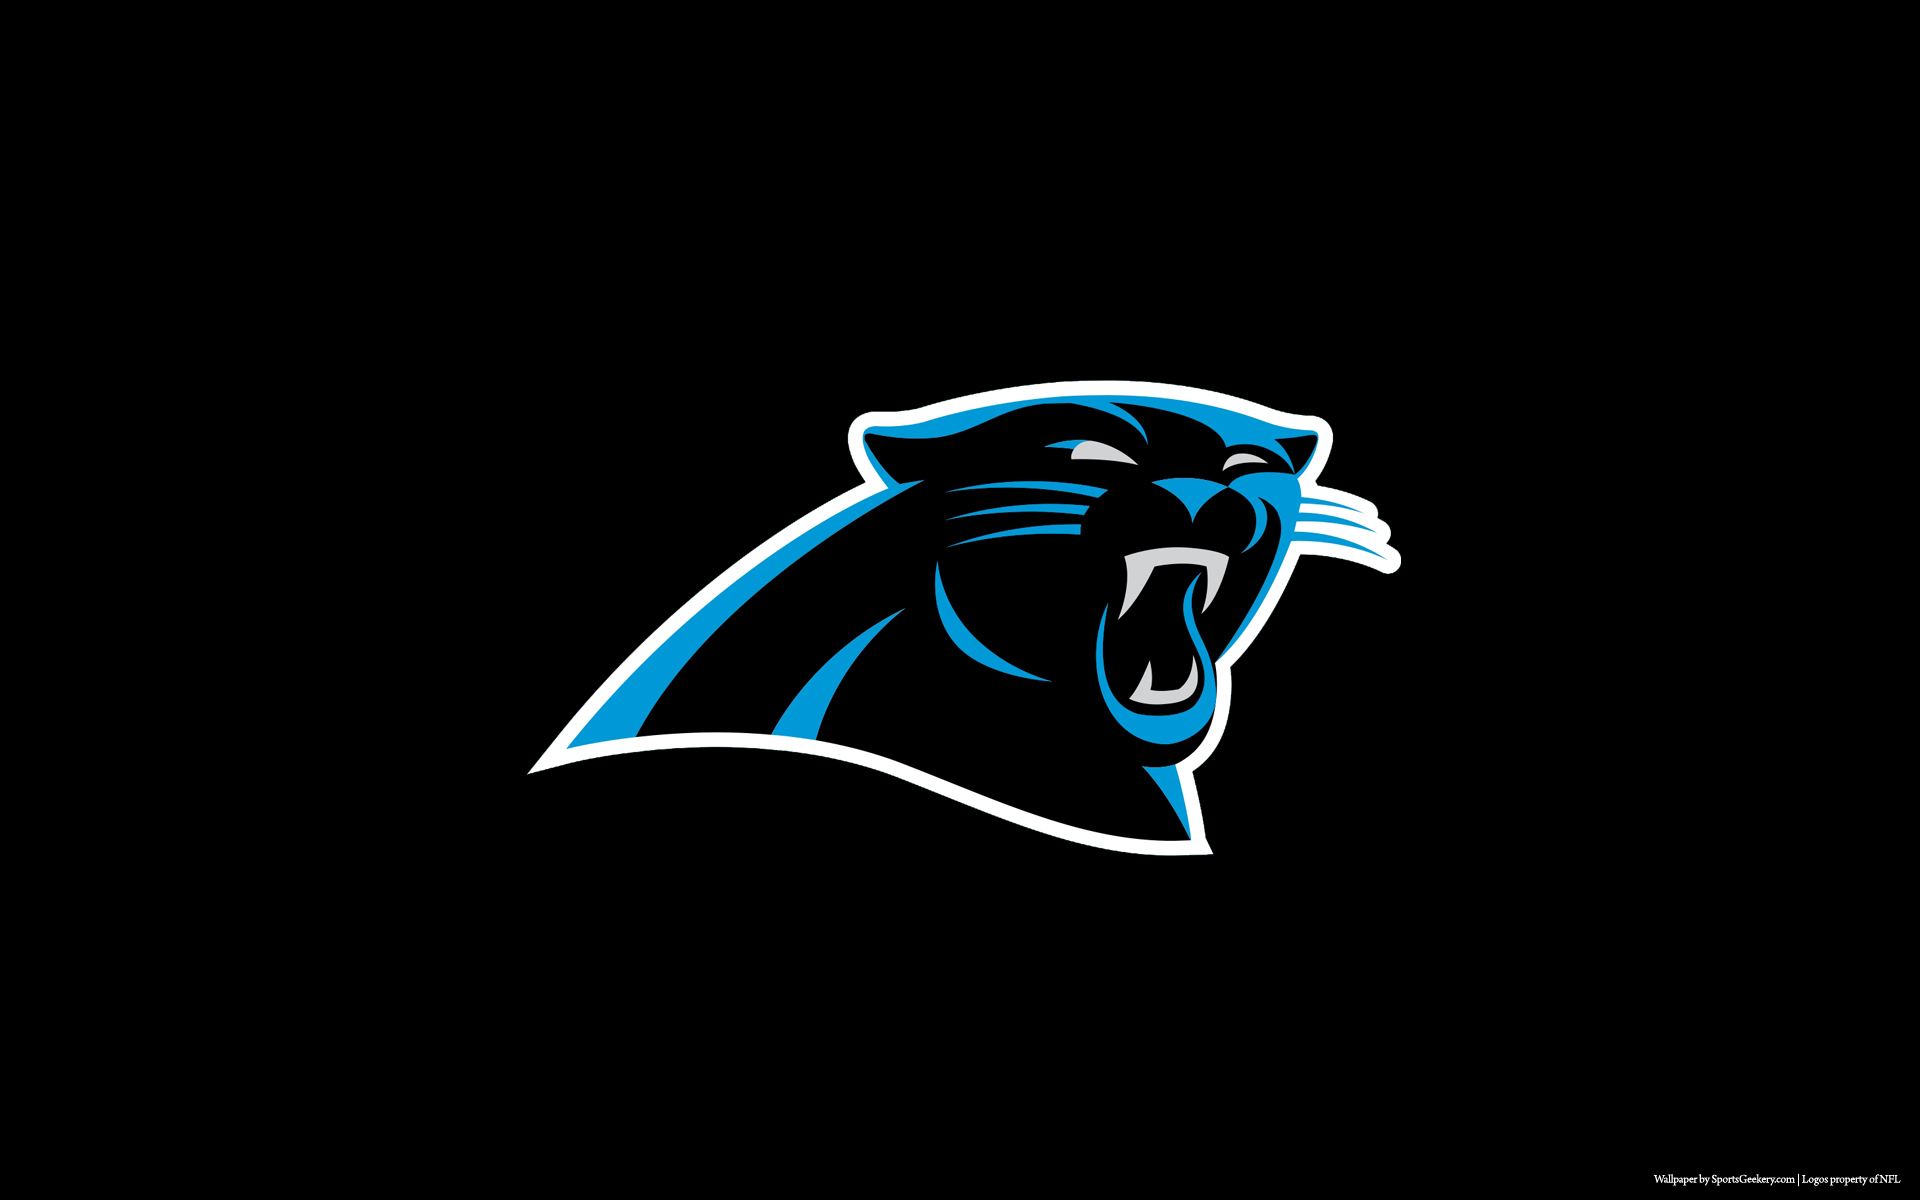 Carolina Panthers Black Wallpaper for Phones and Tablets 1920x1200